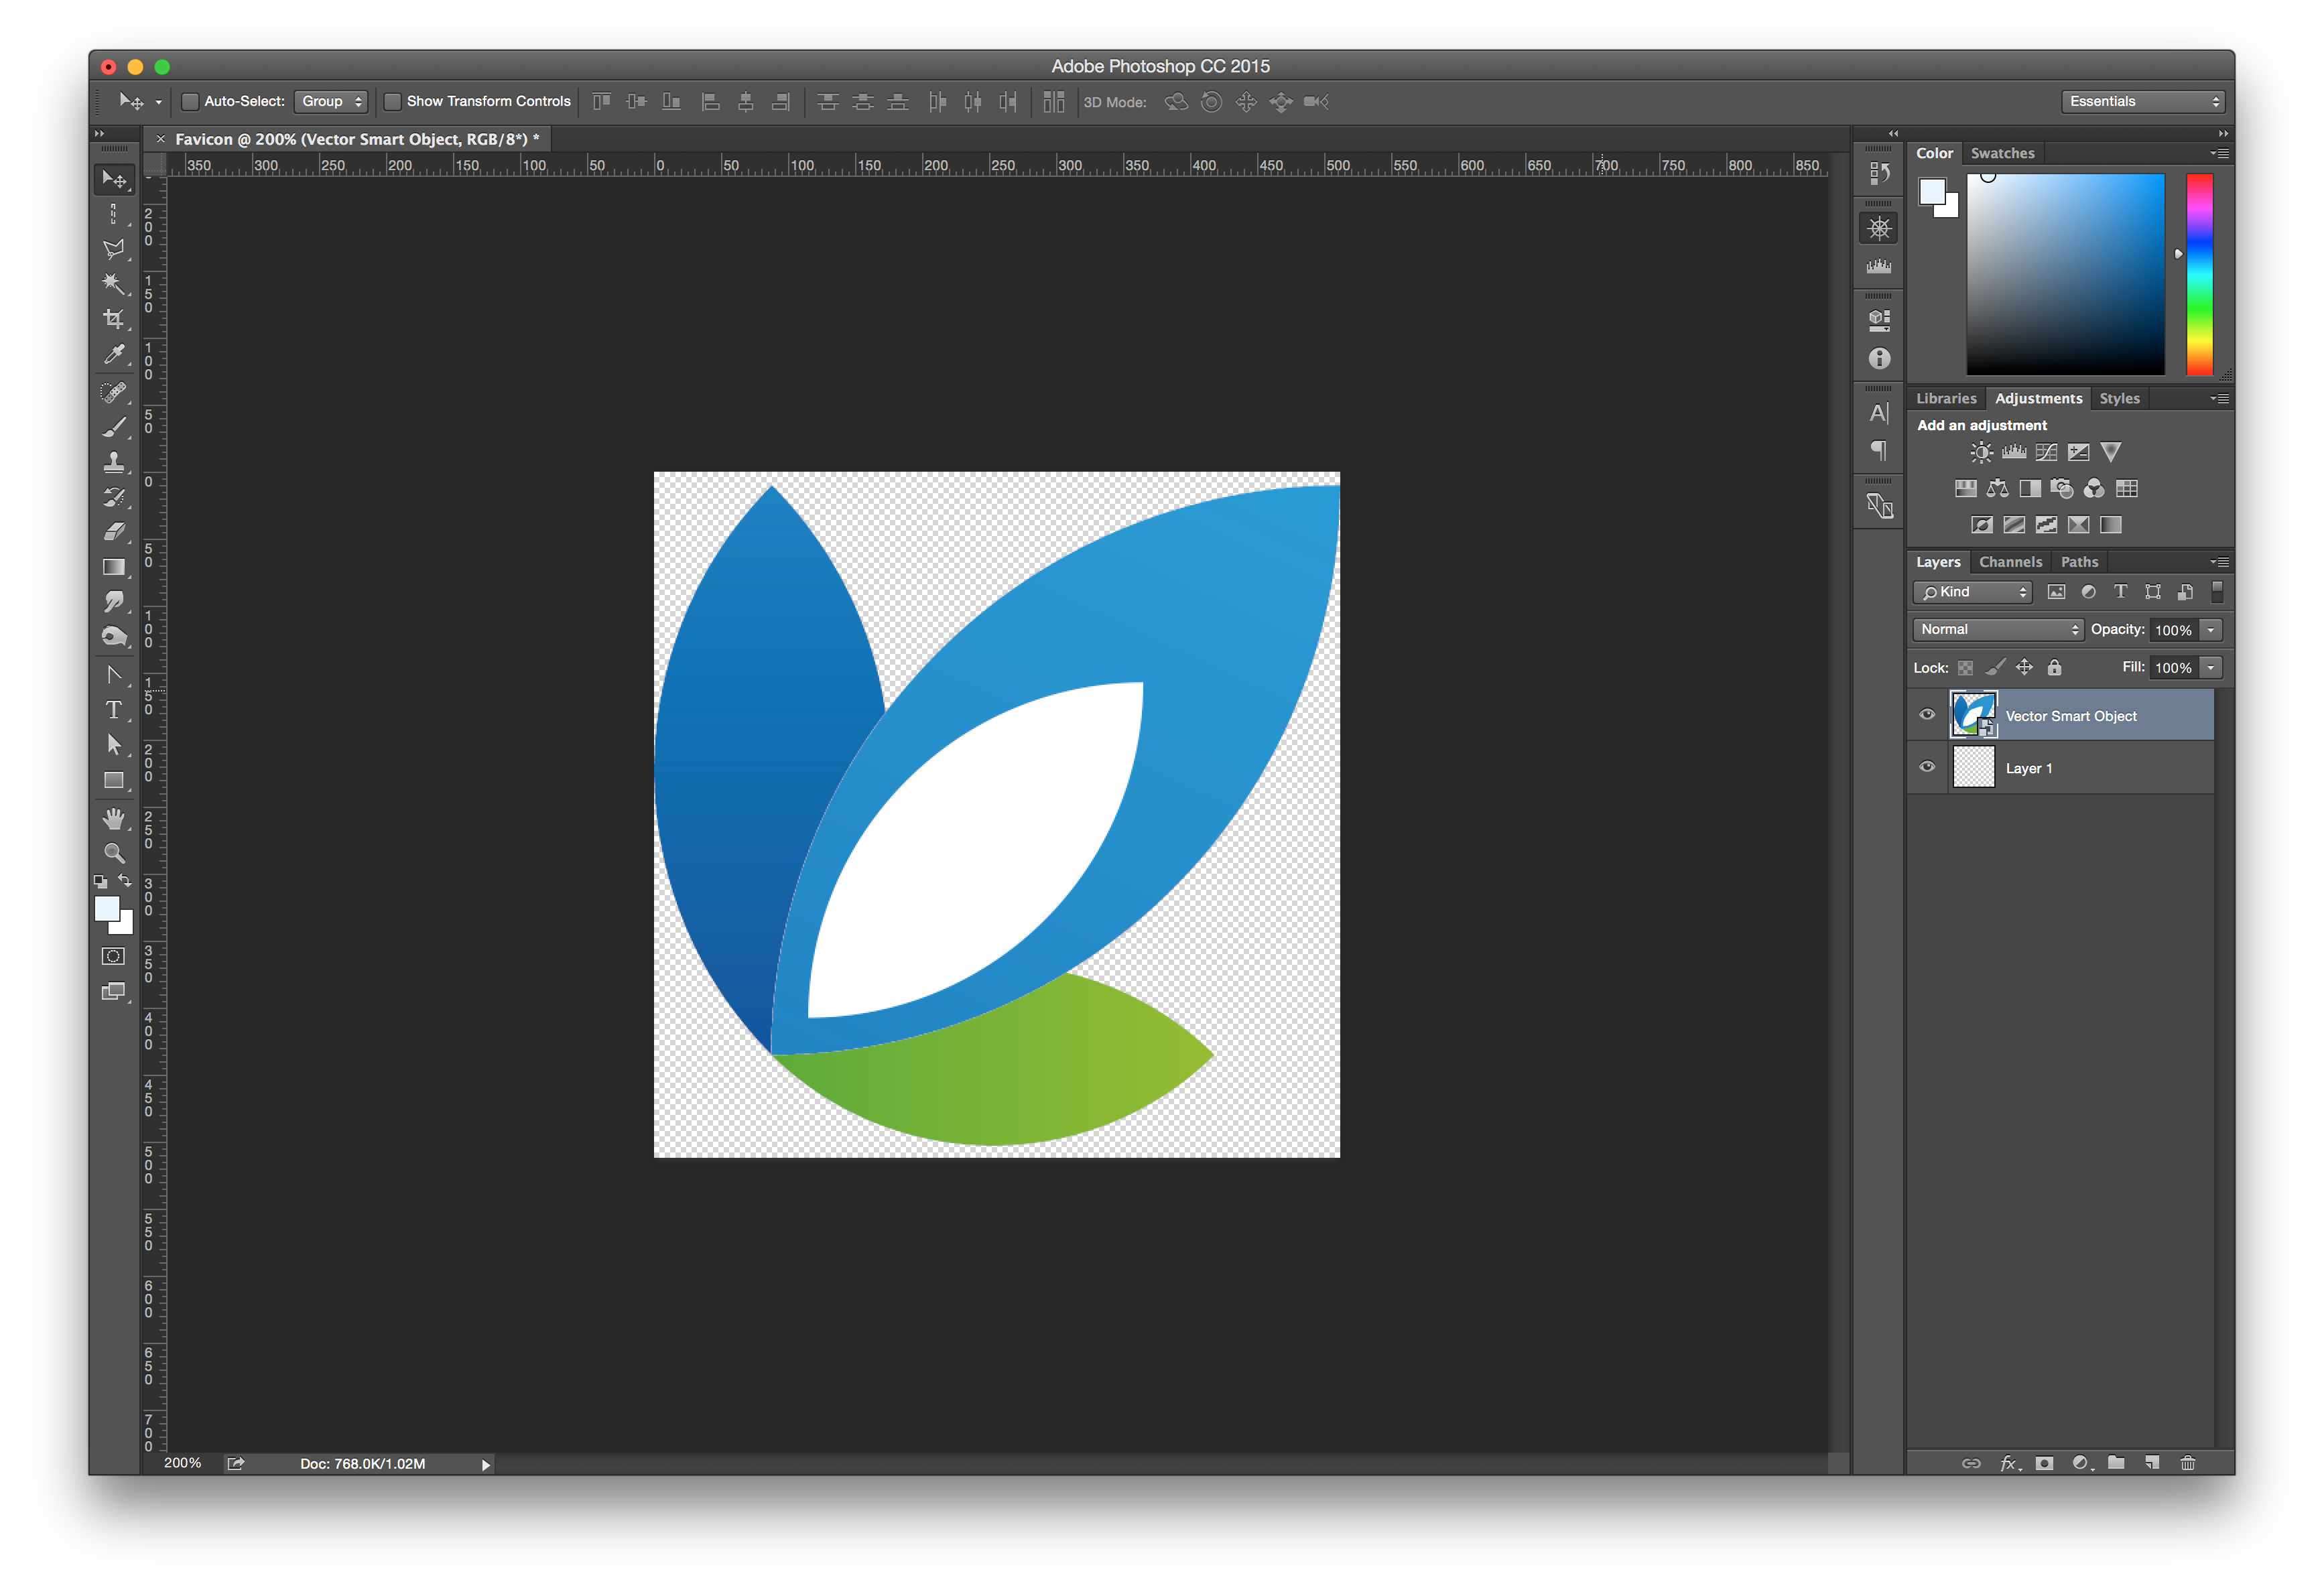 My icon design in photoshop